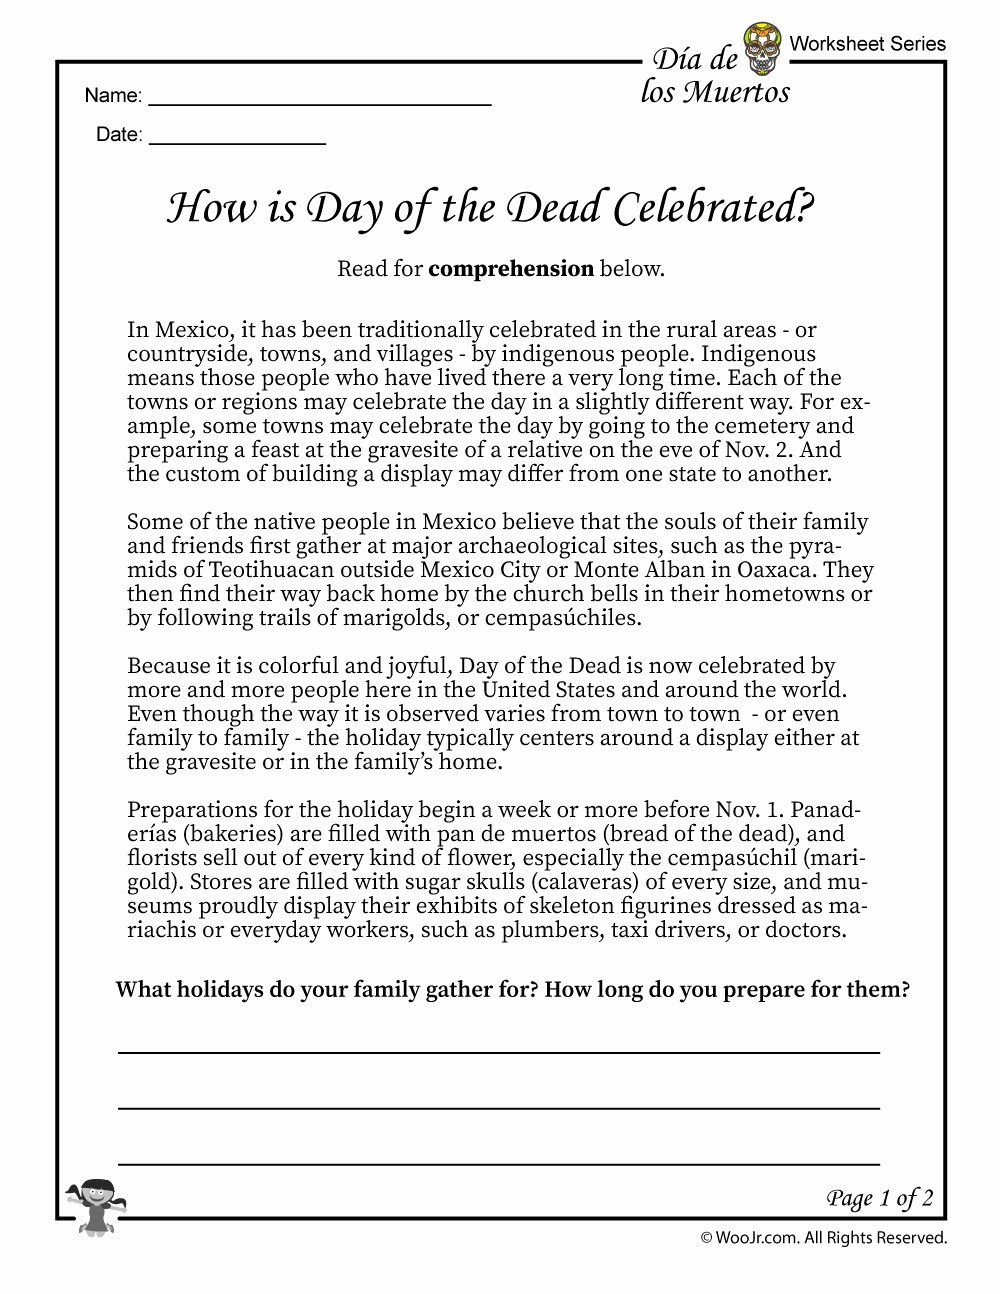 Dia De Los Muertos Worksheet Unique Day Of the Dead Facts Worksheet 1